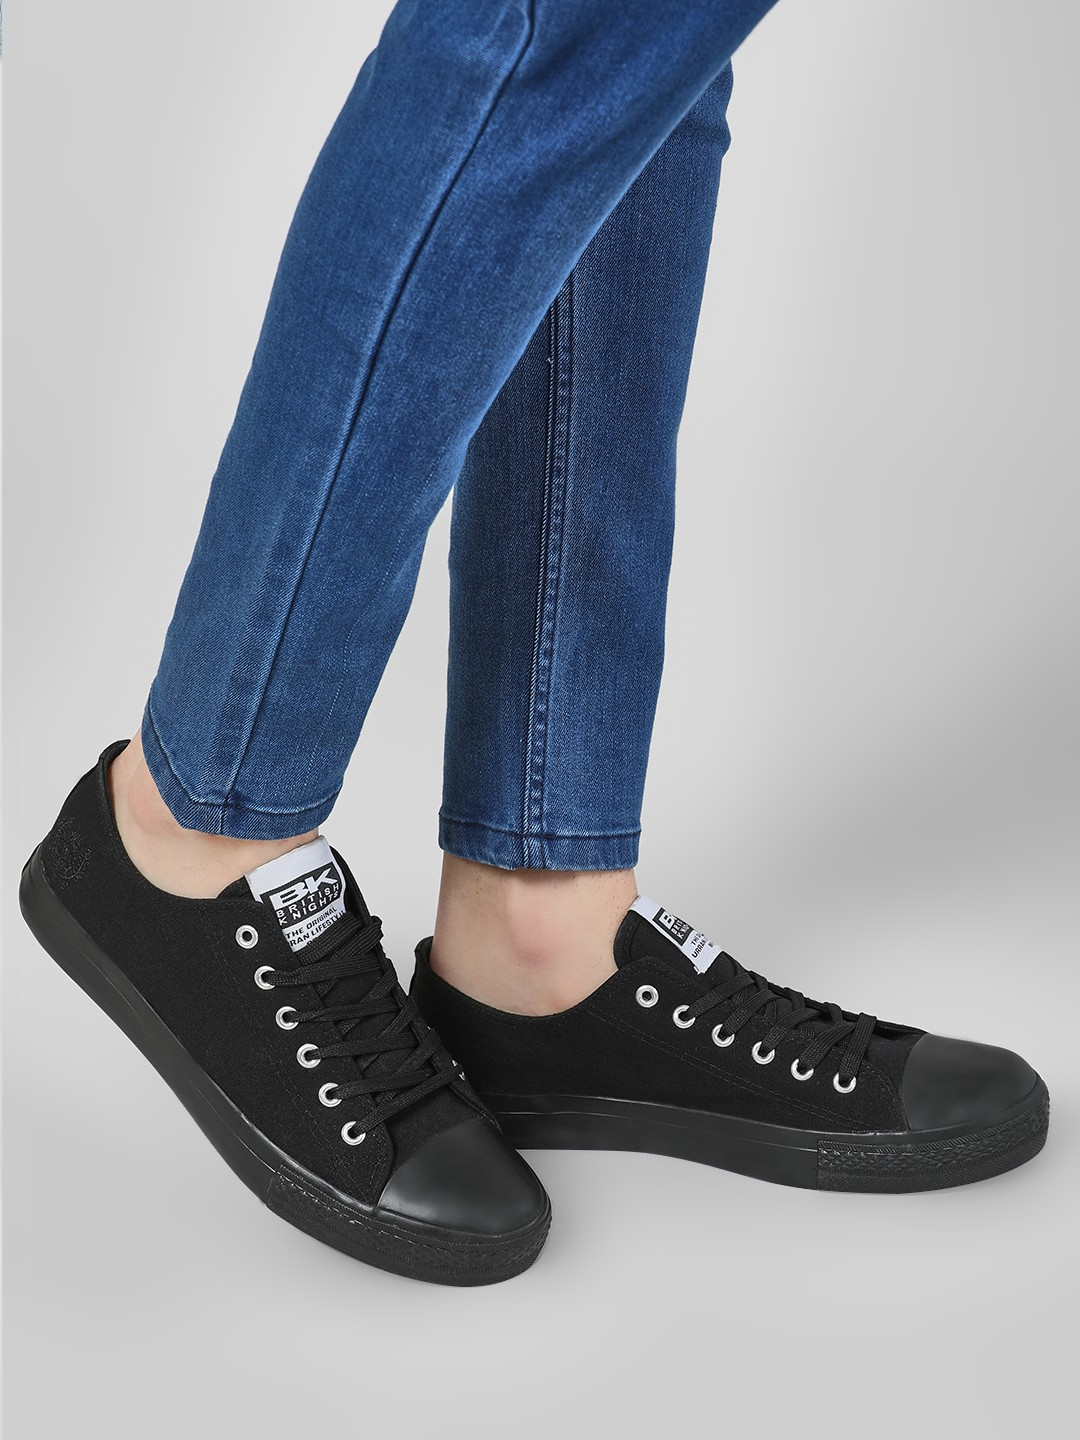 BRITISH KNIGHTS Black Lace-Up Canvas Sneakers 1